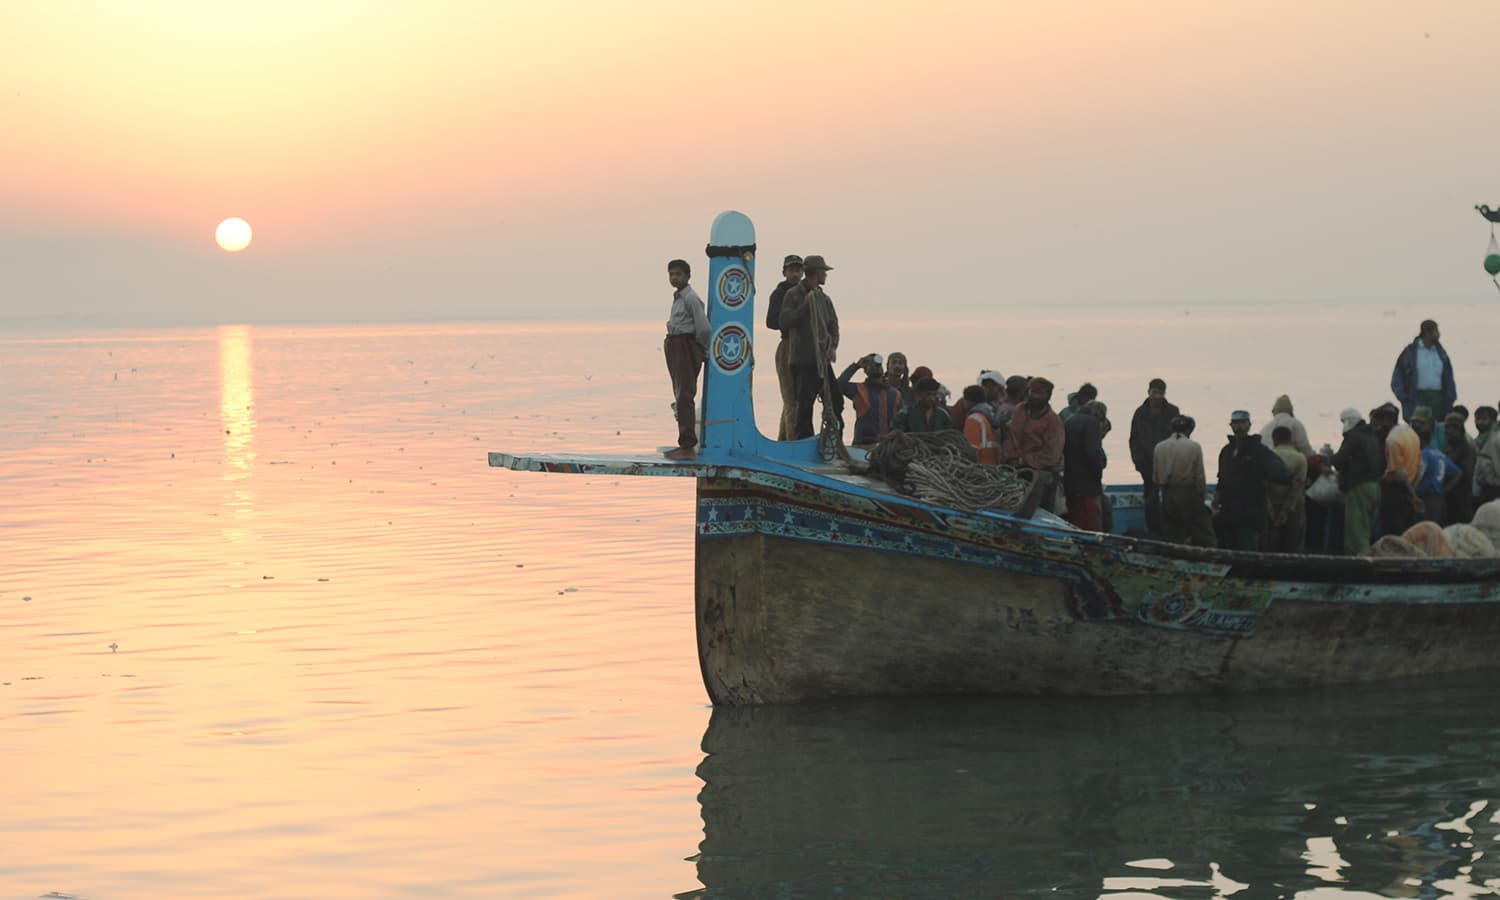 Fishermen return from a trip while the sun is pictured setting in the background.